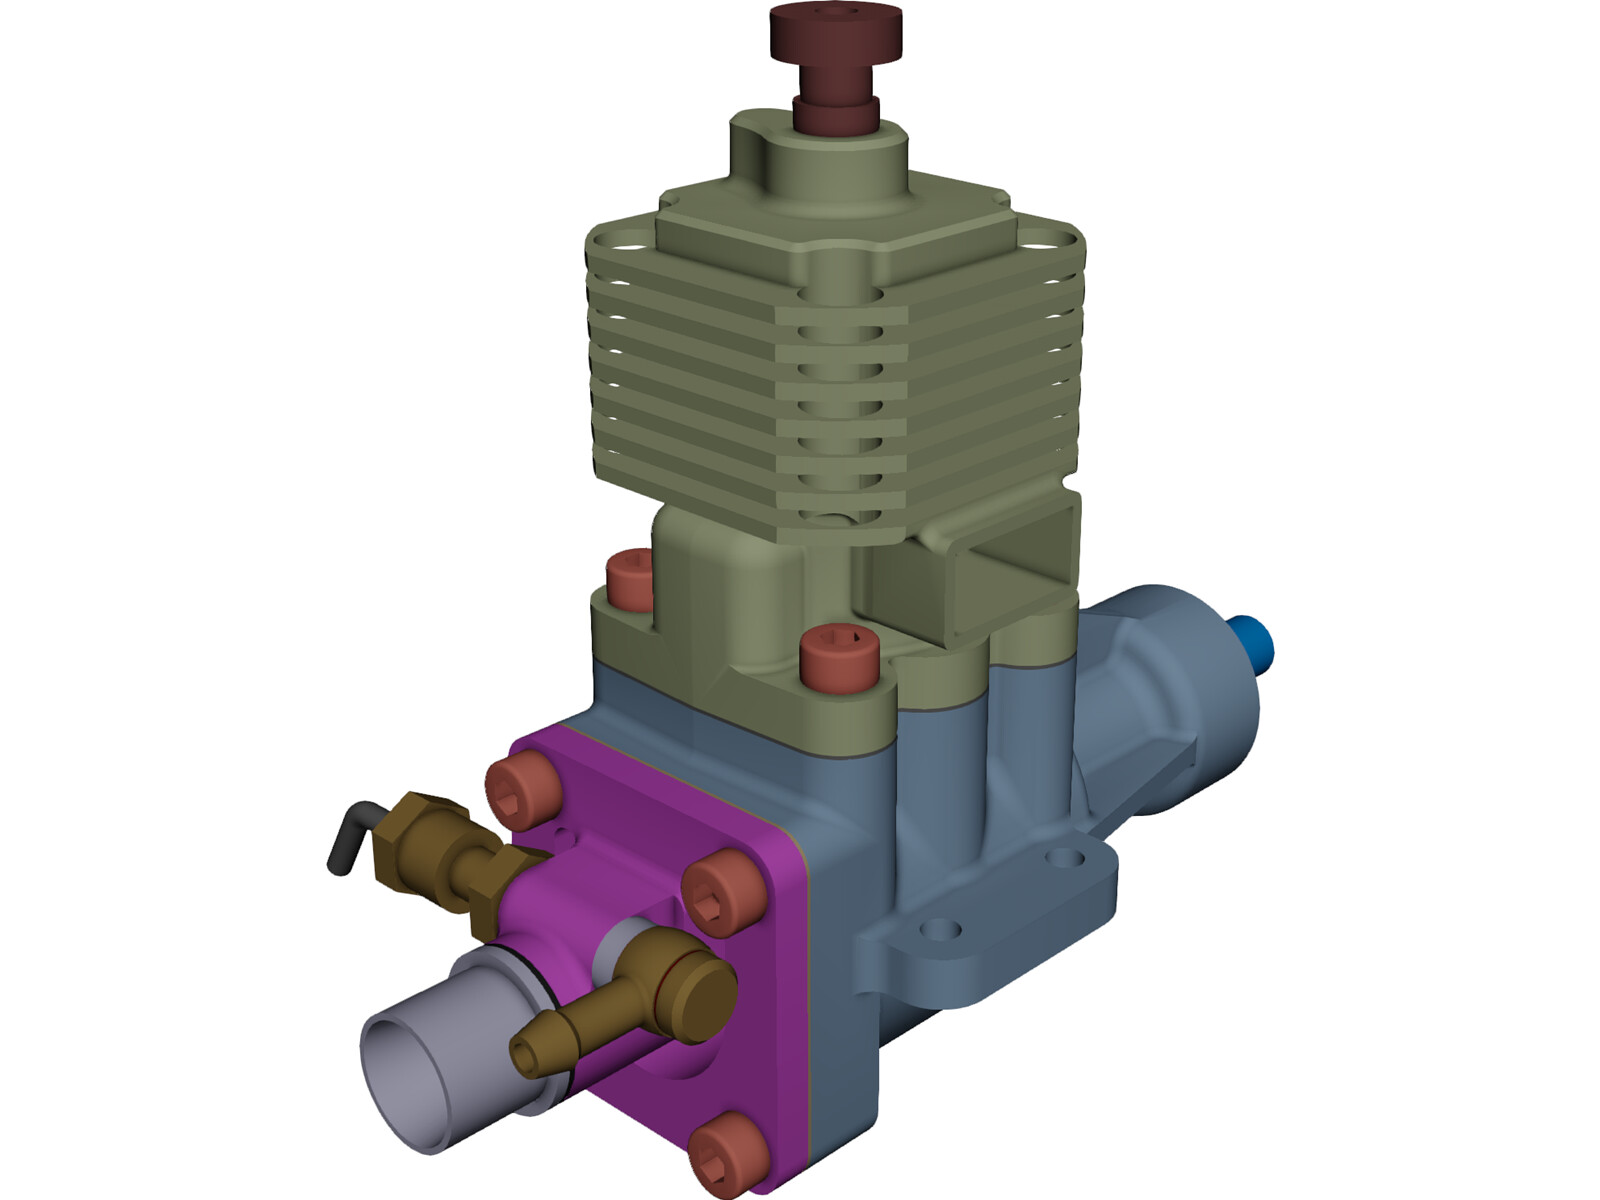 Ethanol RC Auto Combustion Engine 3D CAD Model